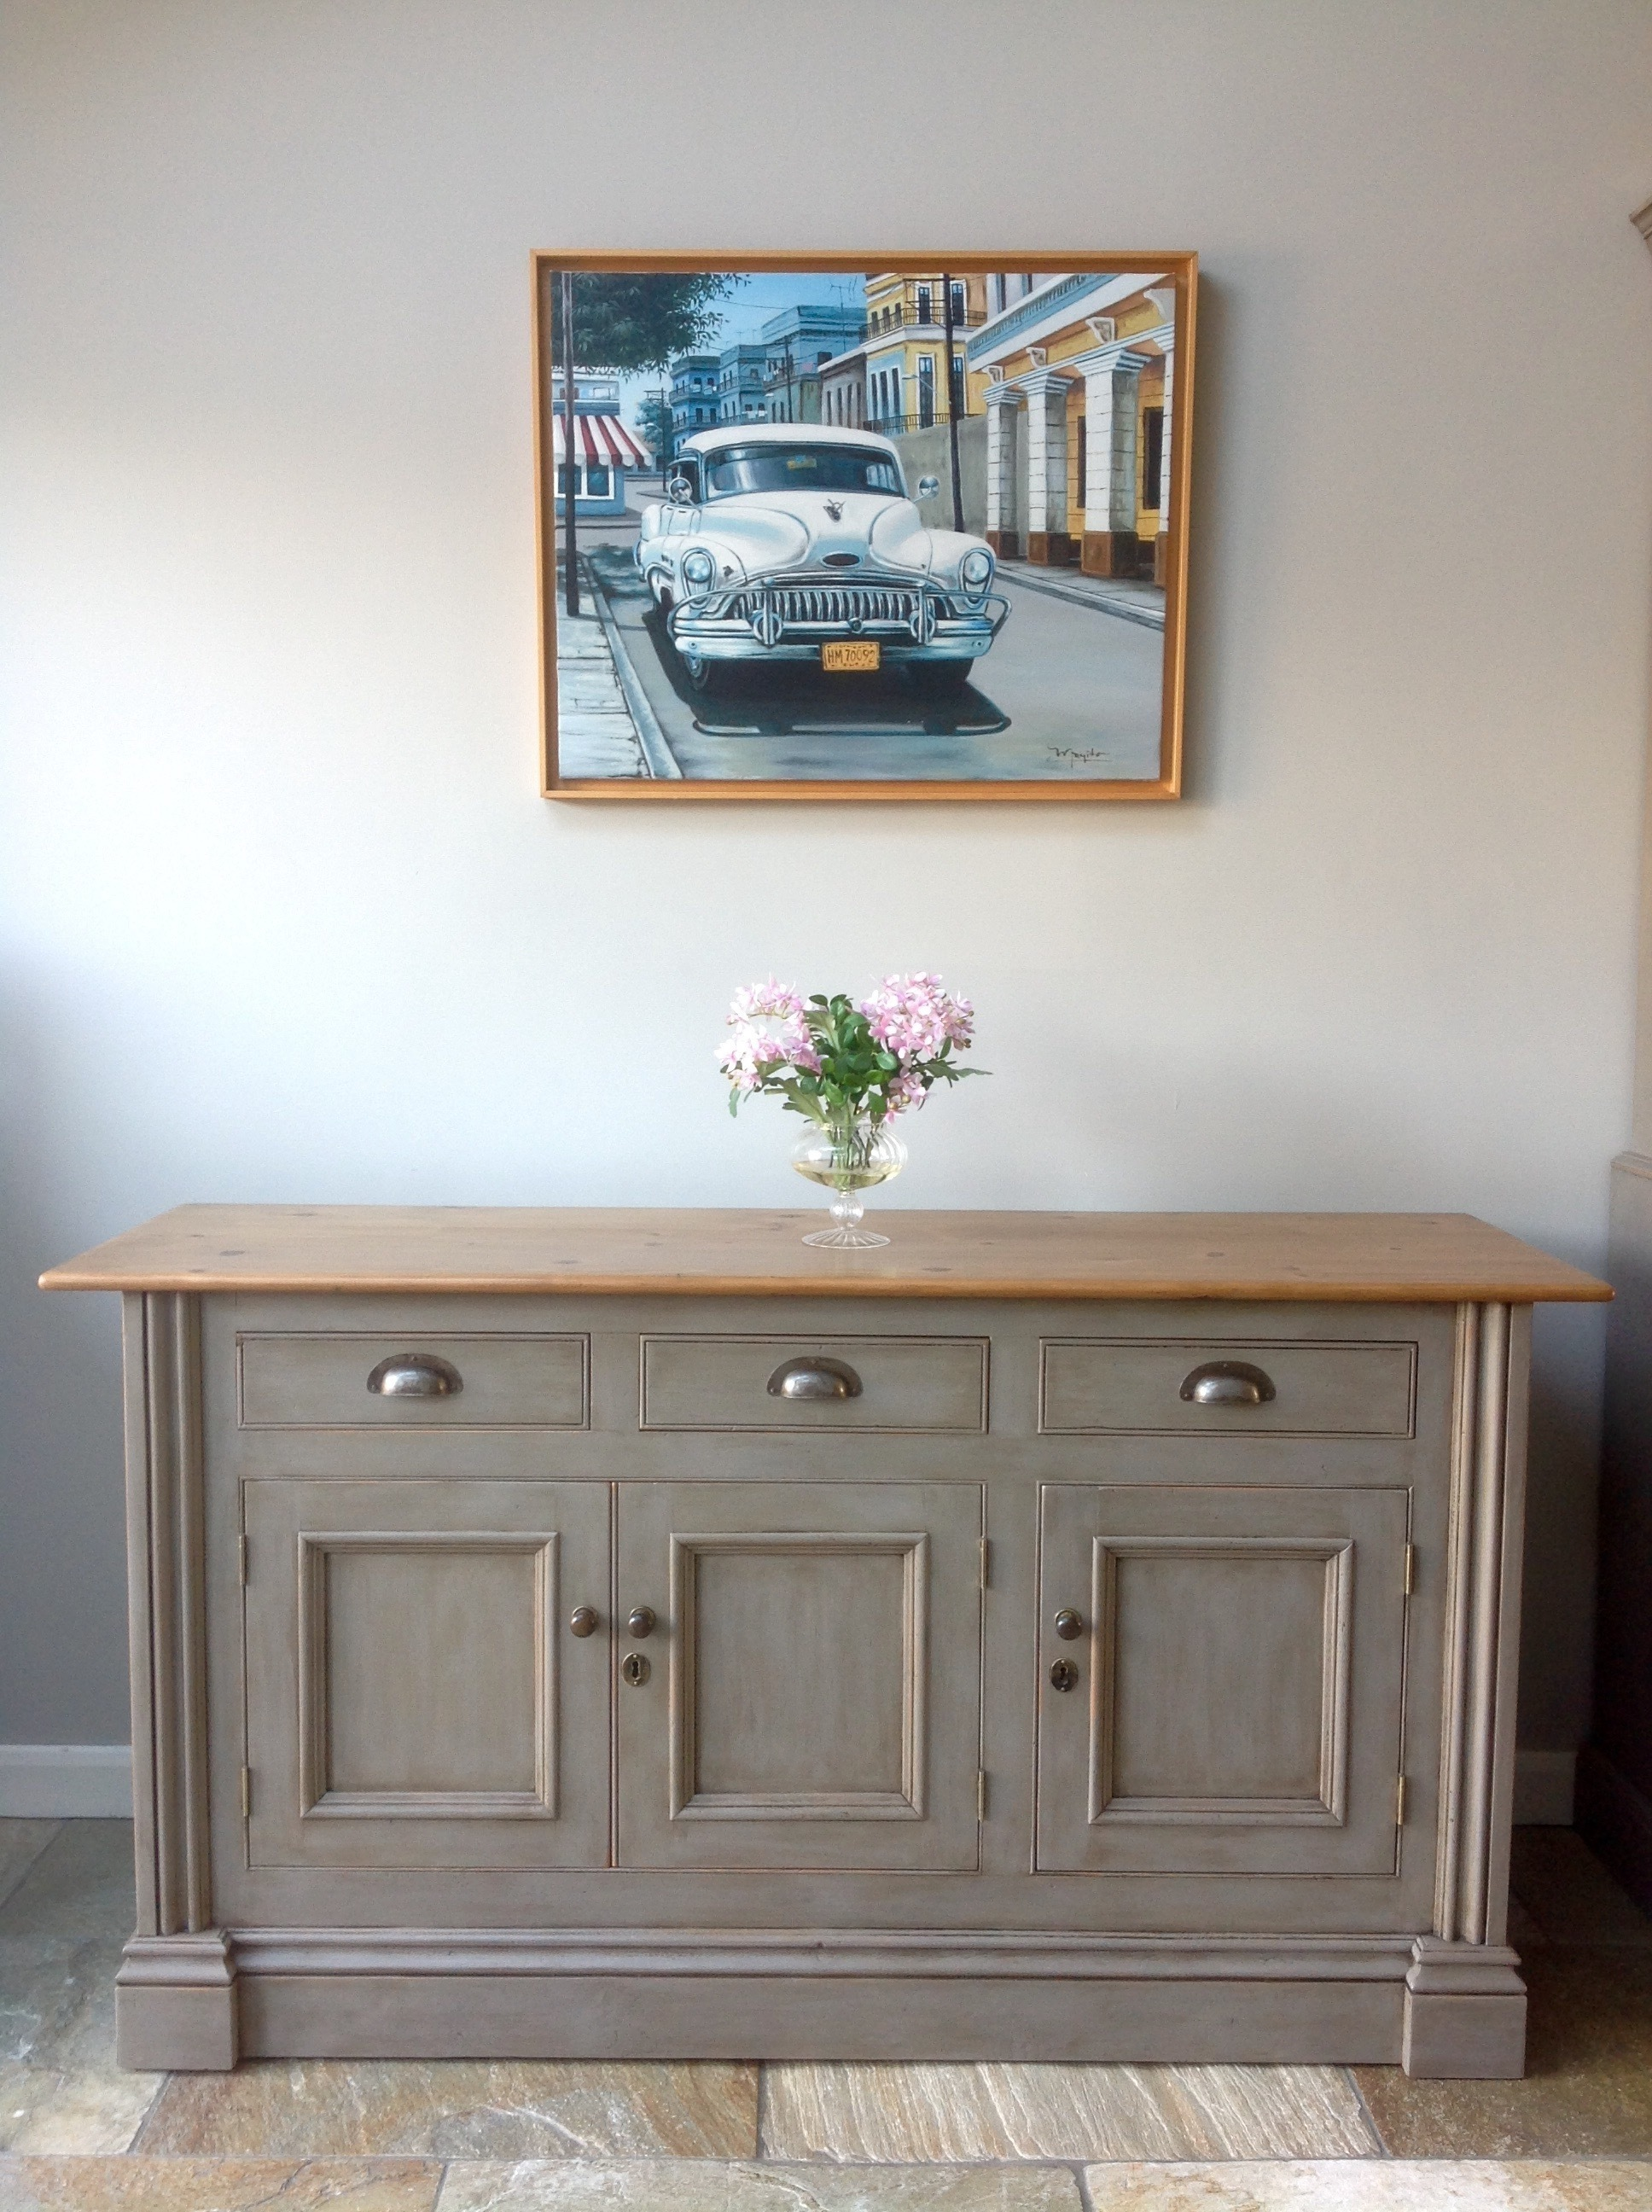 Rustic Chalk Painted Annie Sloan French Linen Grey Pine Country Sideboard Cupboard Kitchen Unit Dresser Vinterior